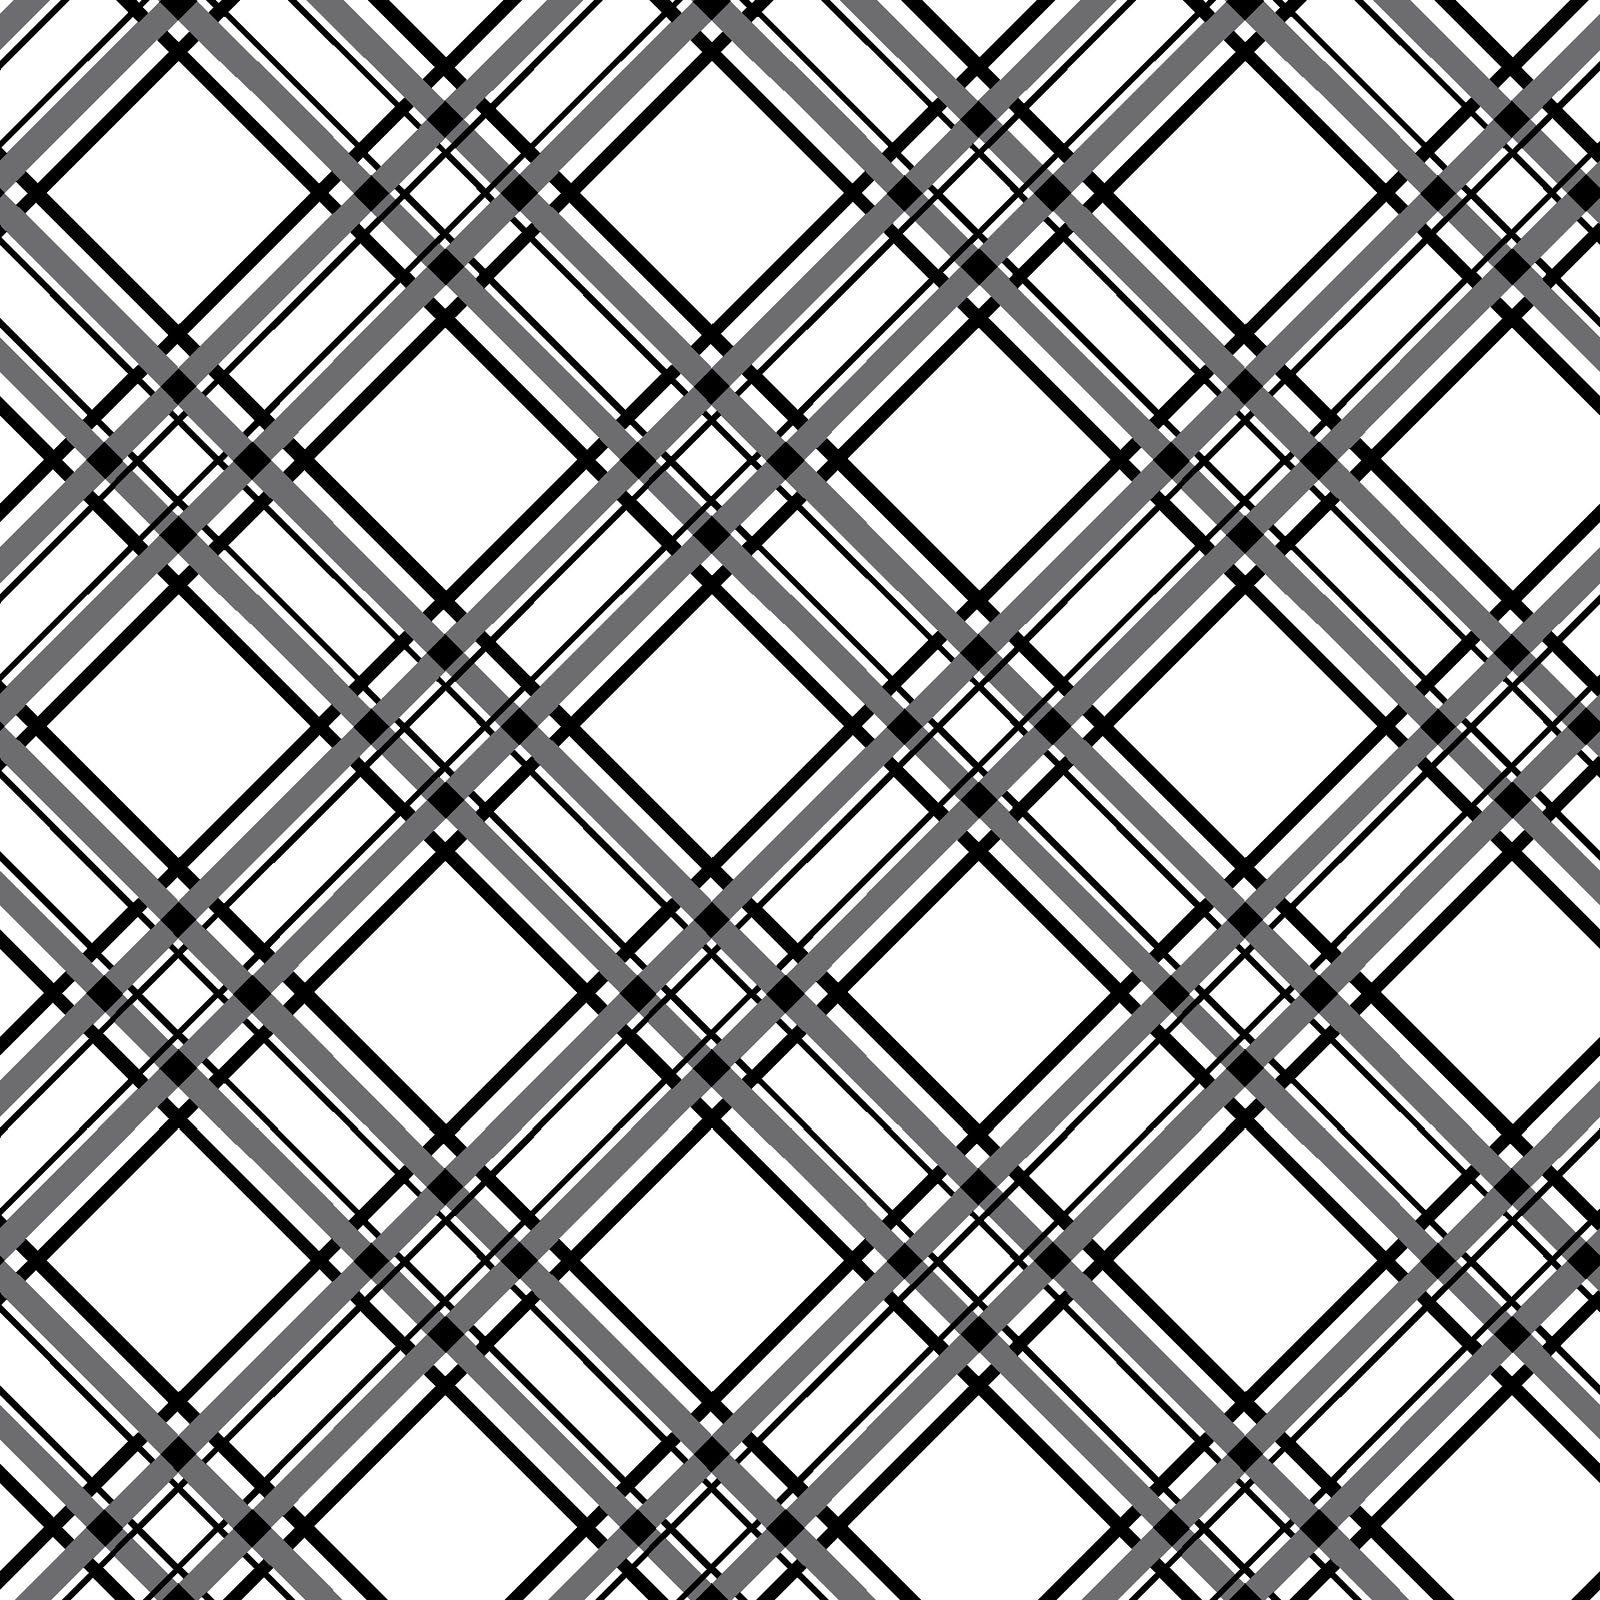 Diagonal Plaid Design by Kimberbell